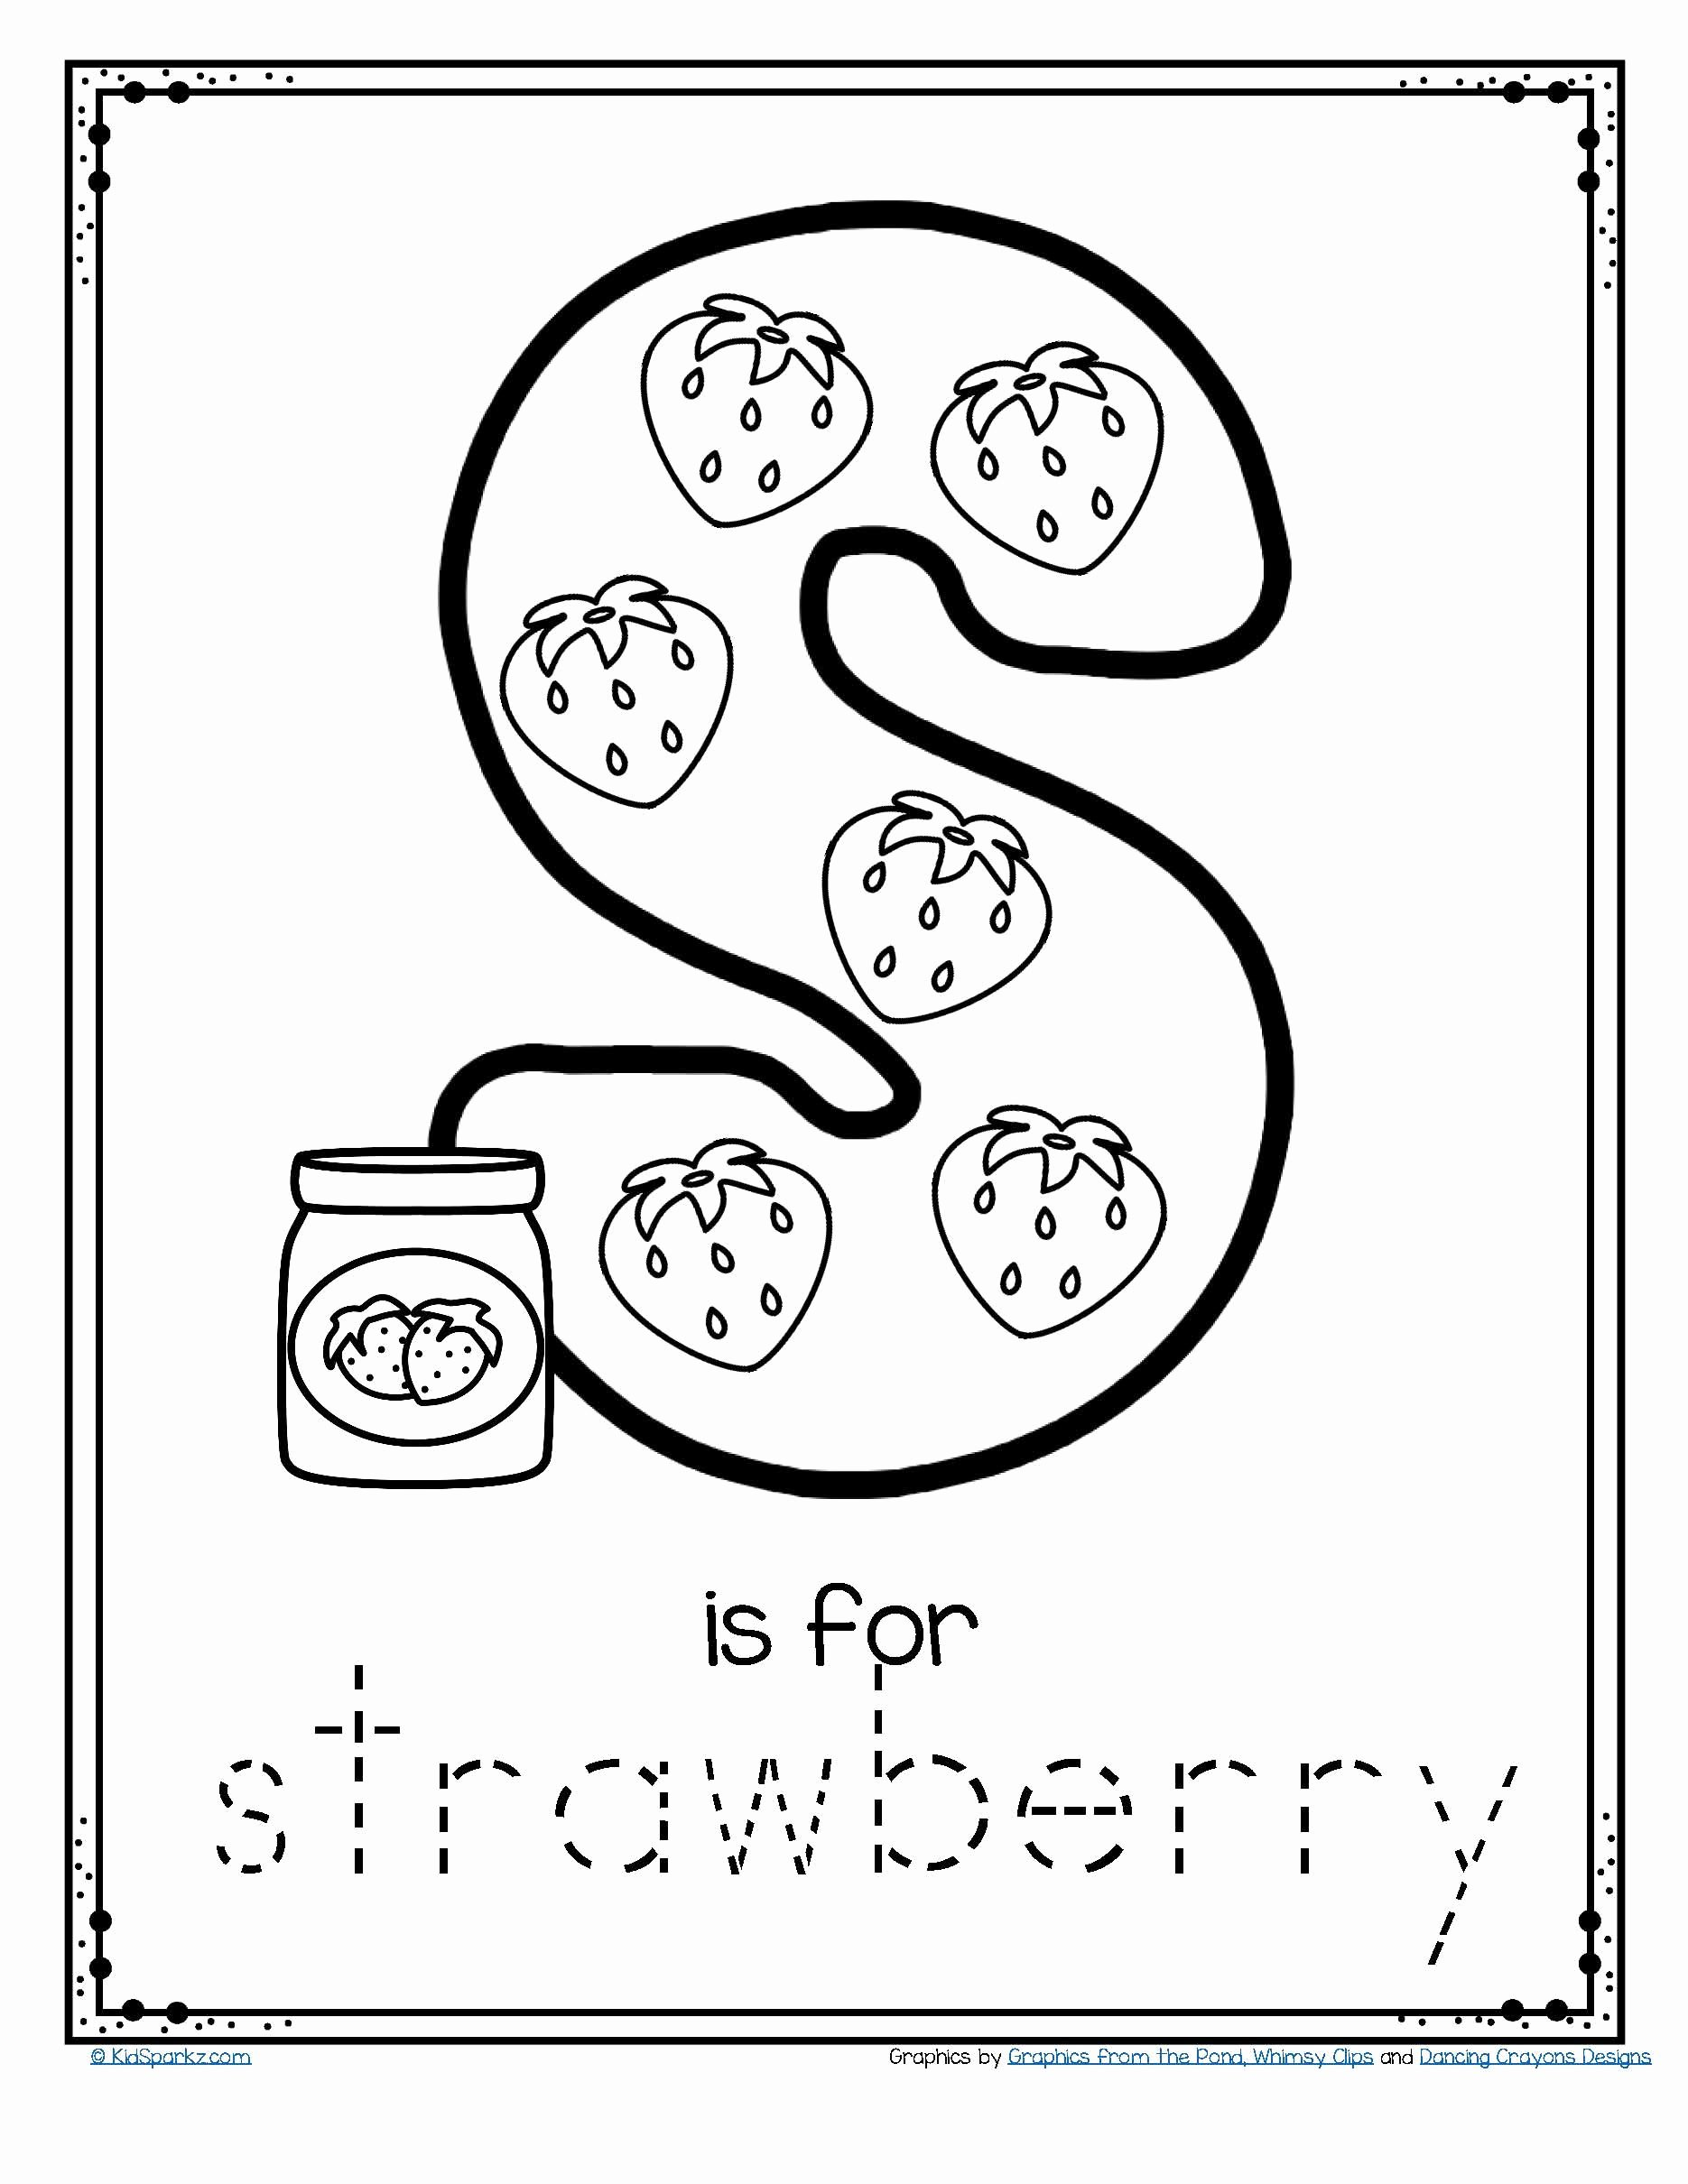 Homeschooling Worksheets for Preschoolers New Free is for Strawberry Alphabet Letter Printable Traceable